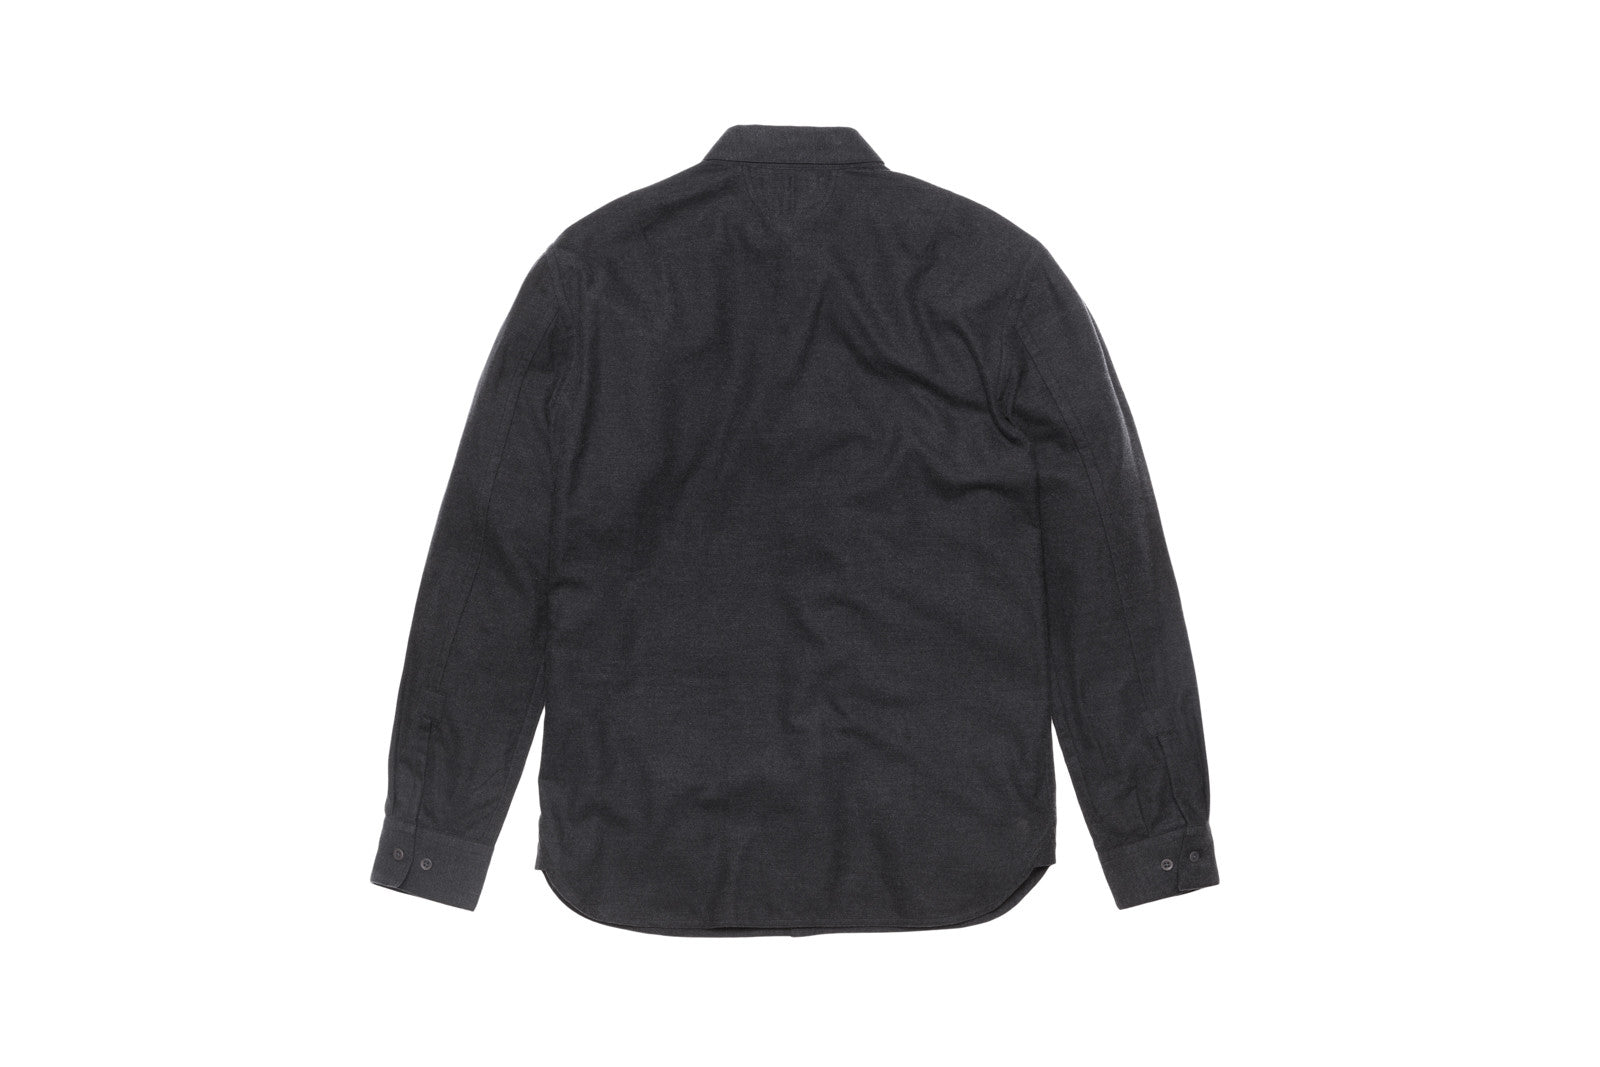 Helmut Lang Heritage Button-Up